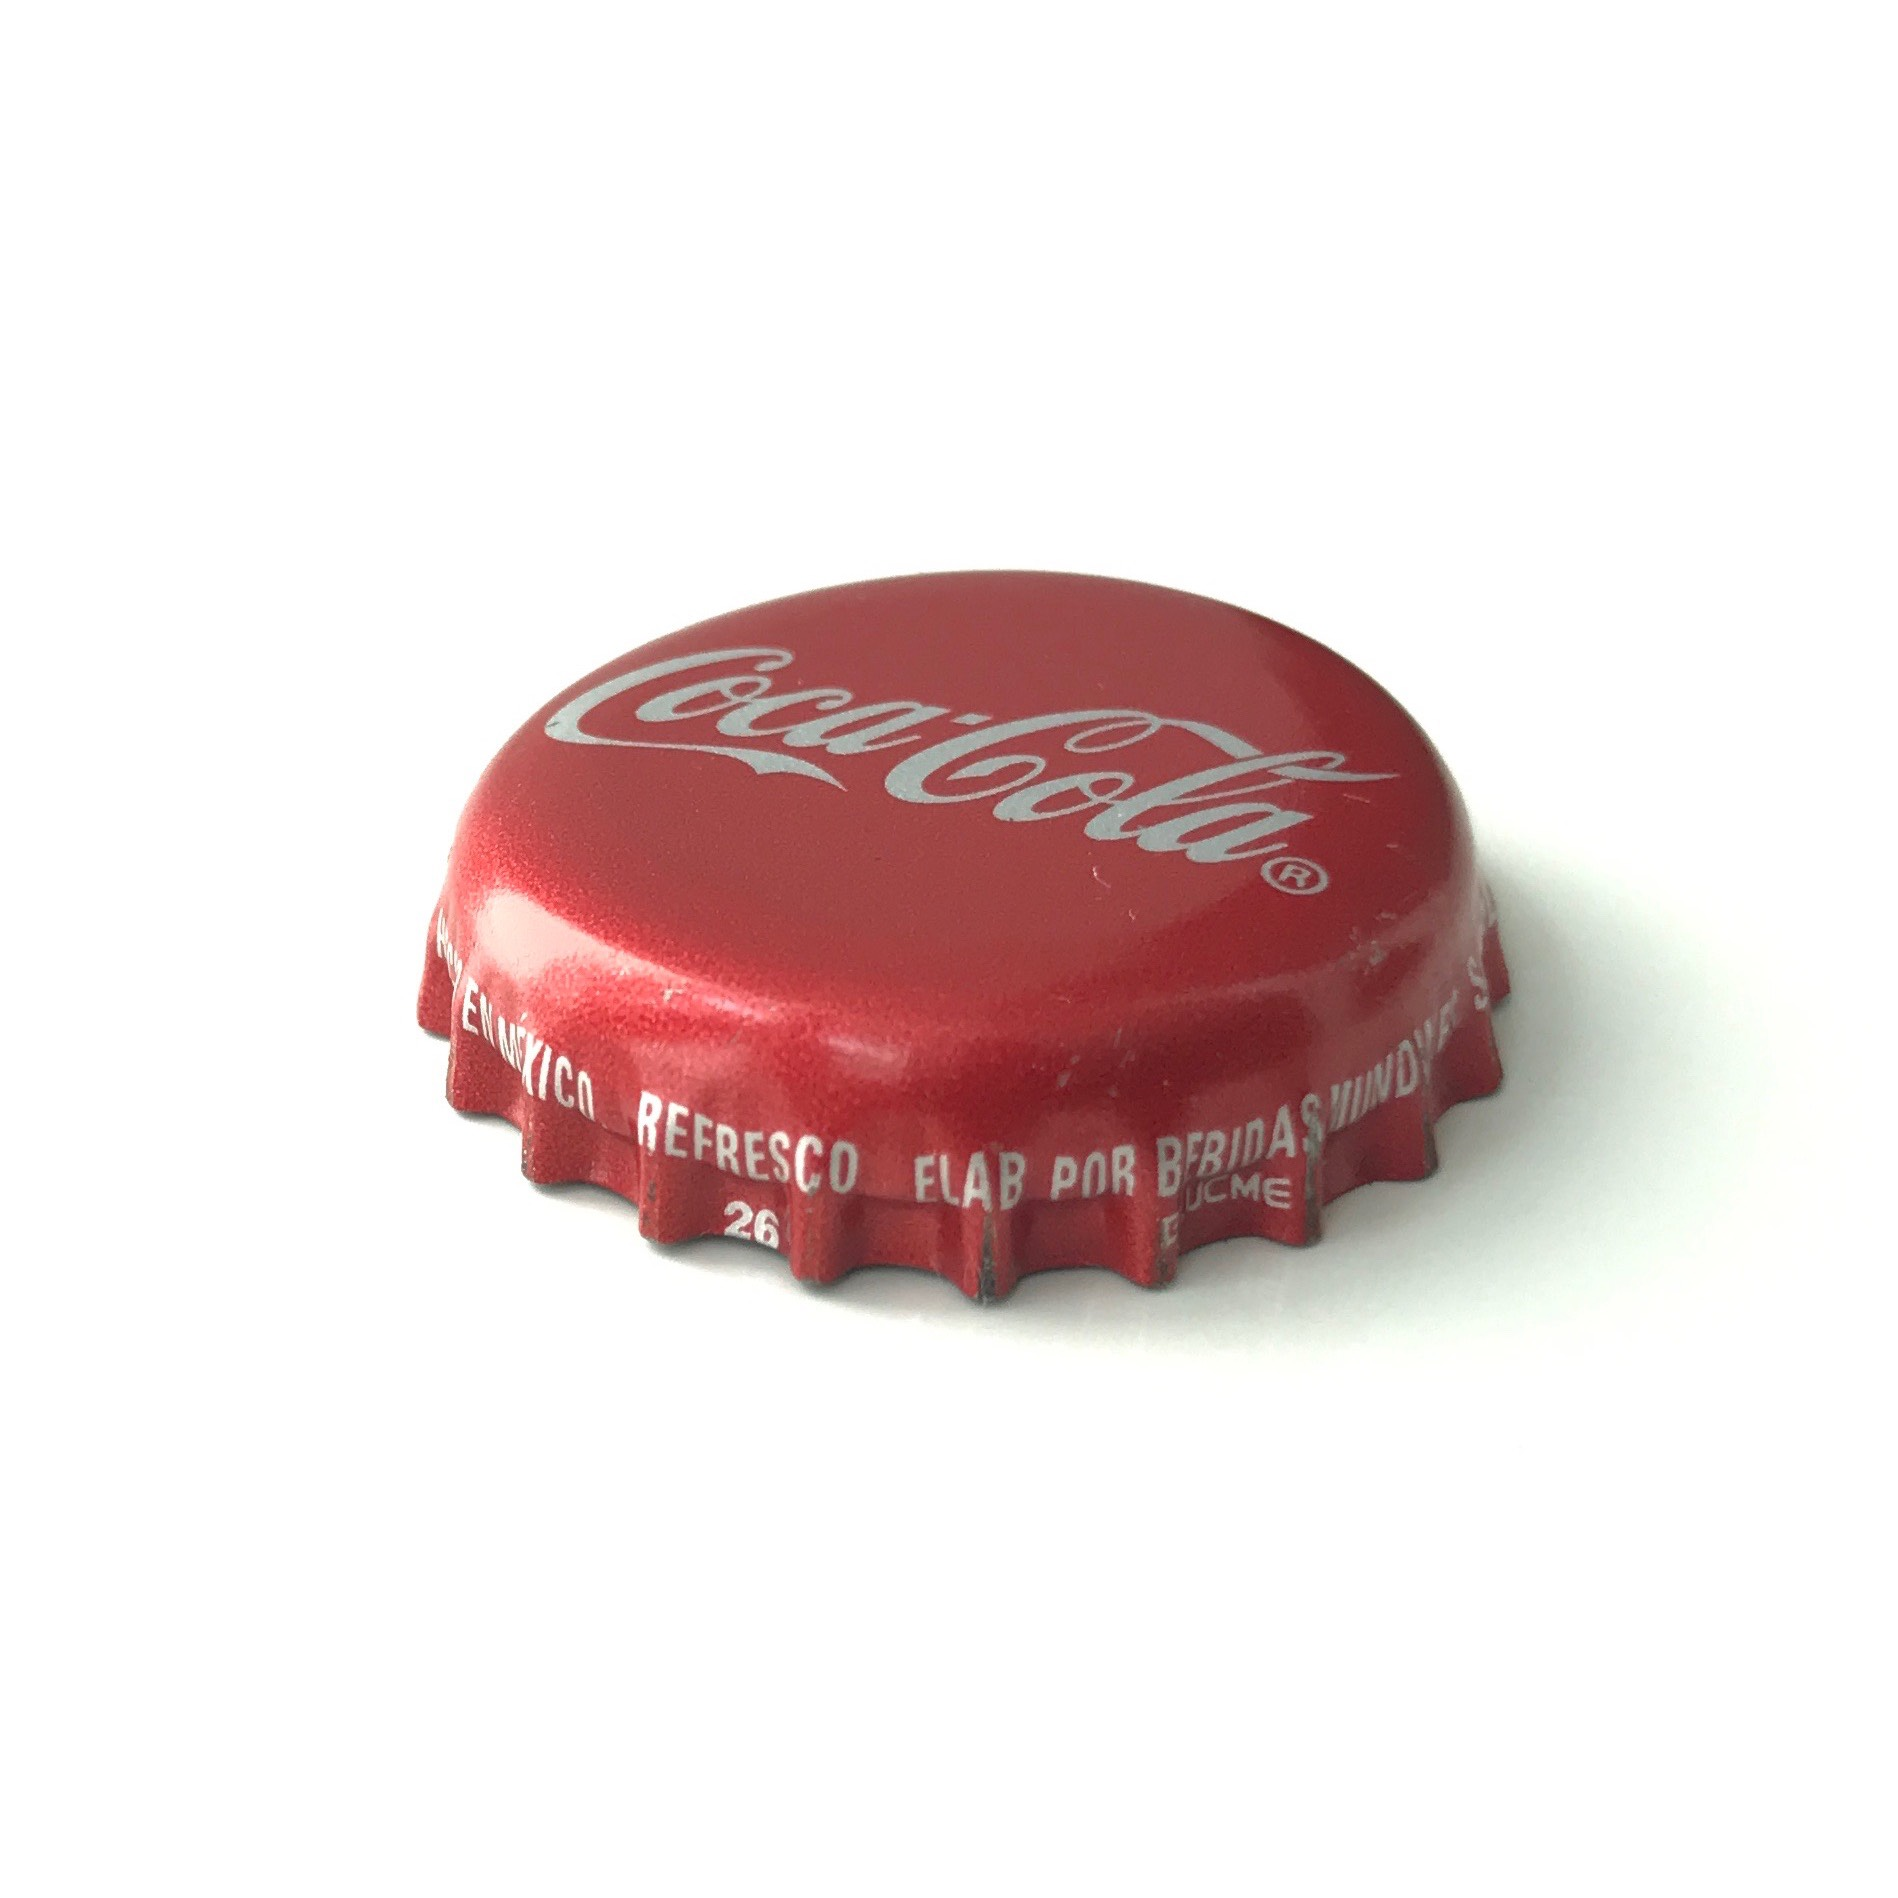 Mexican Coke bottle cap.